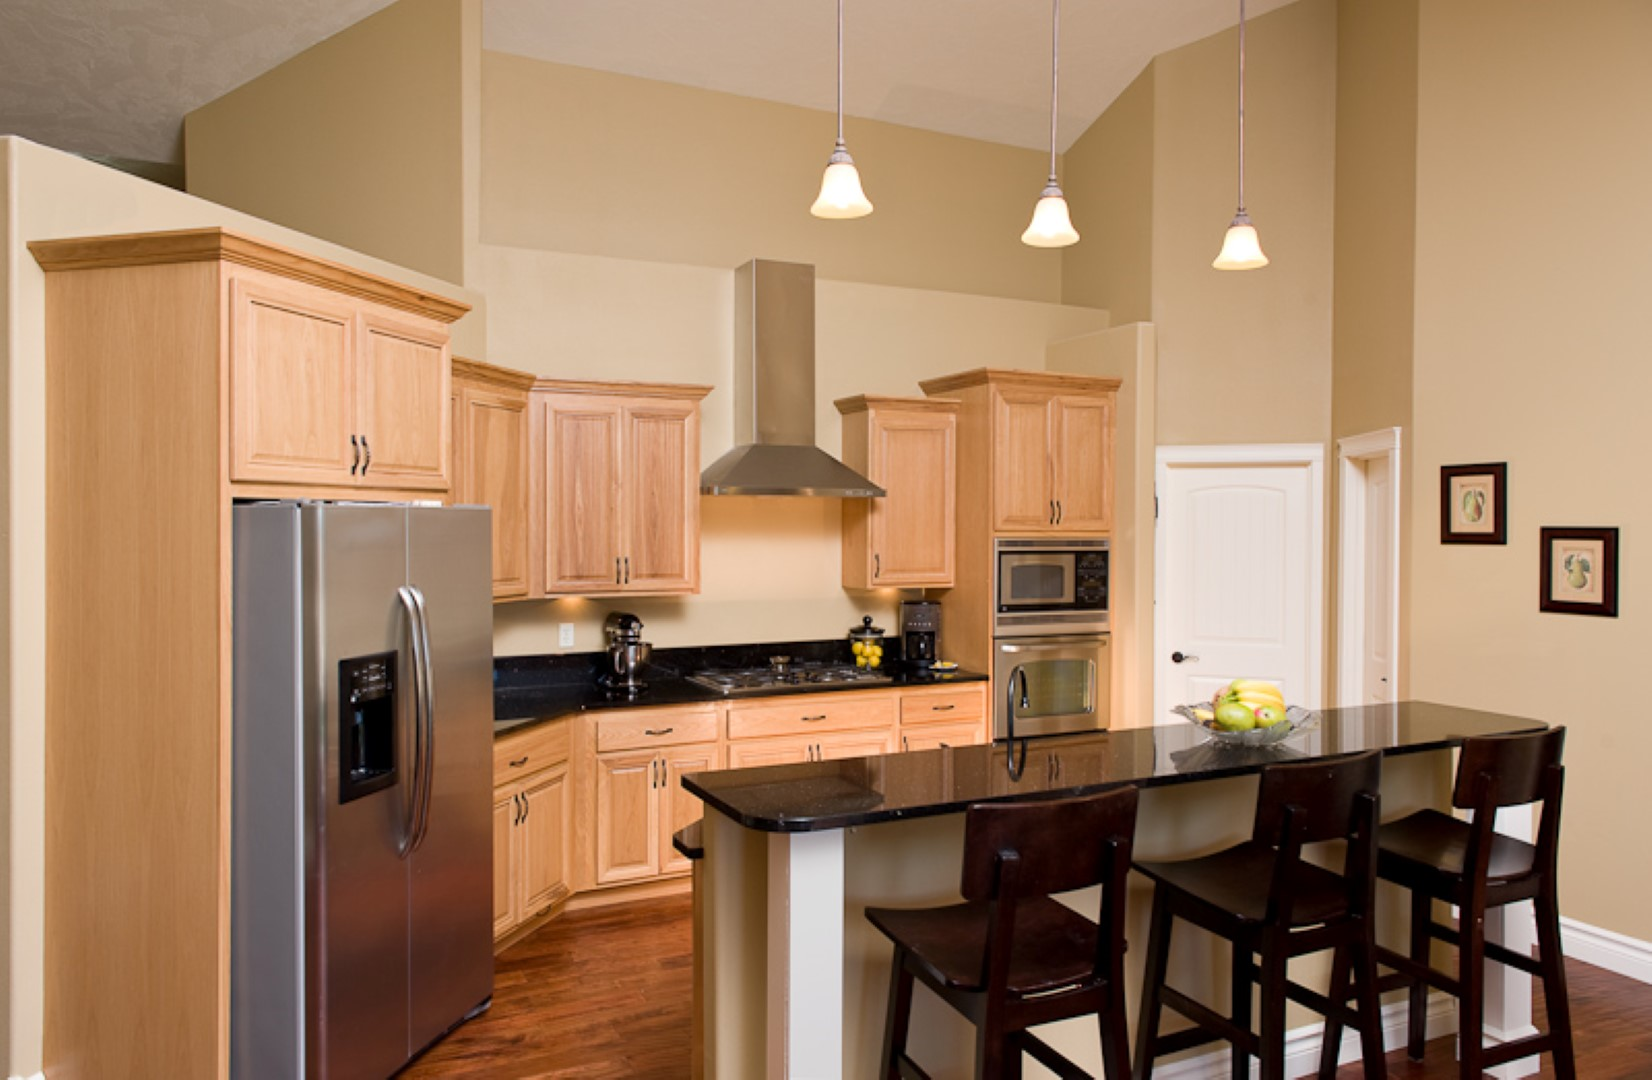 Cabinets-1014 (Large).jpg